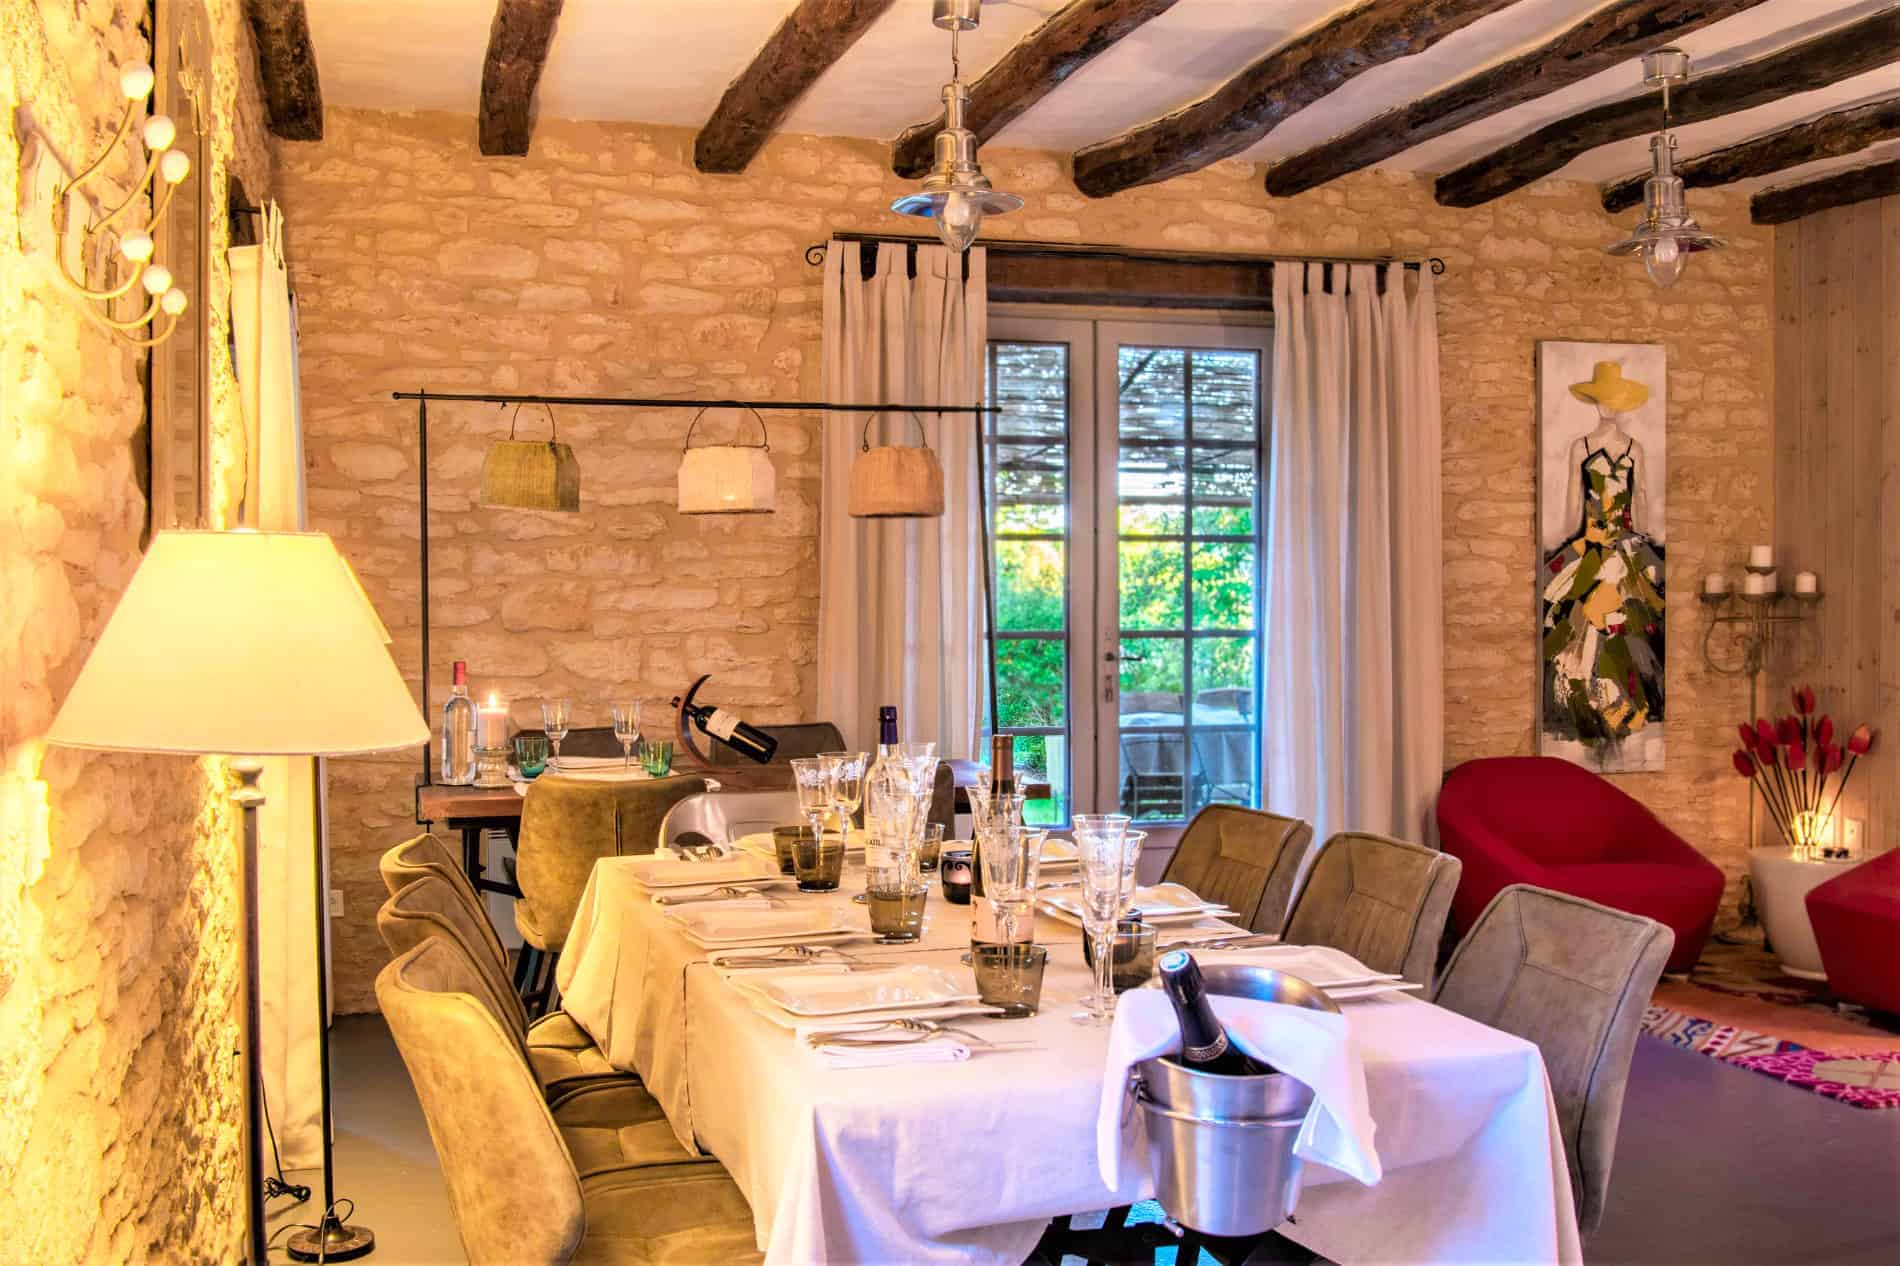 chambres et table d hotes sarlat